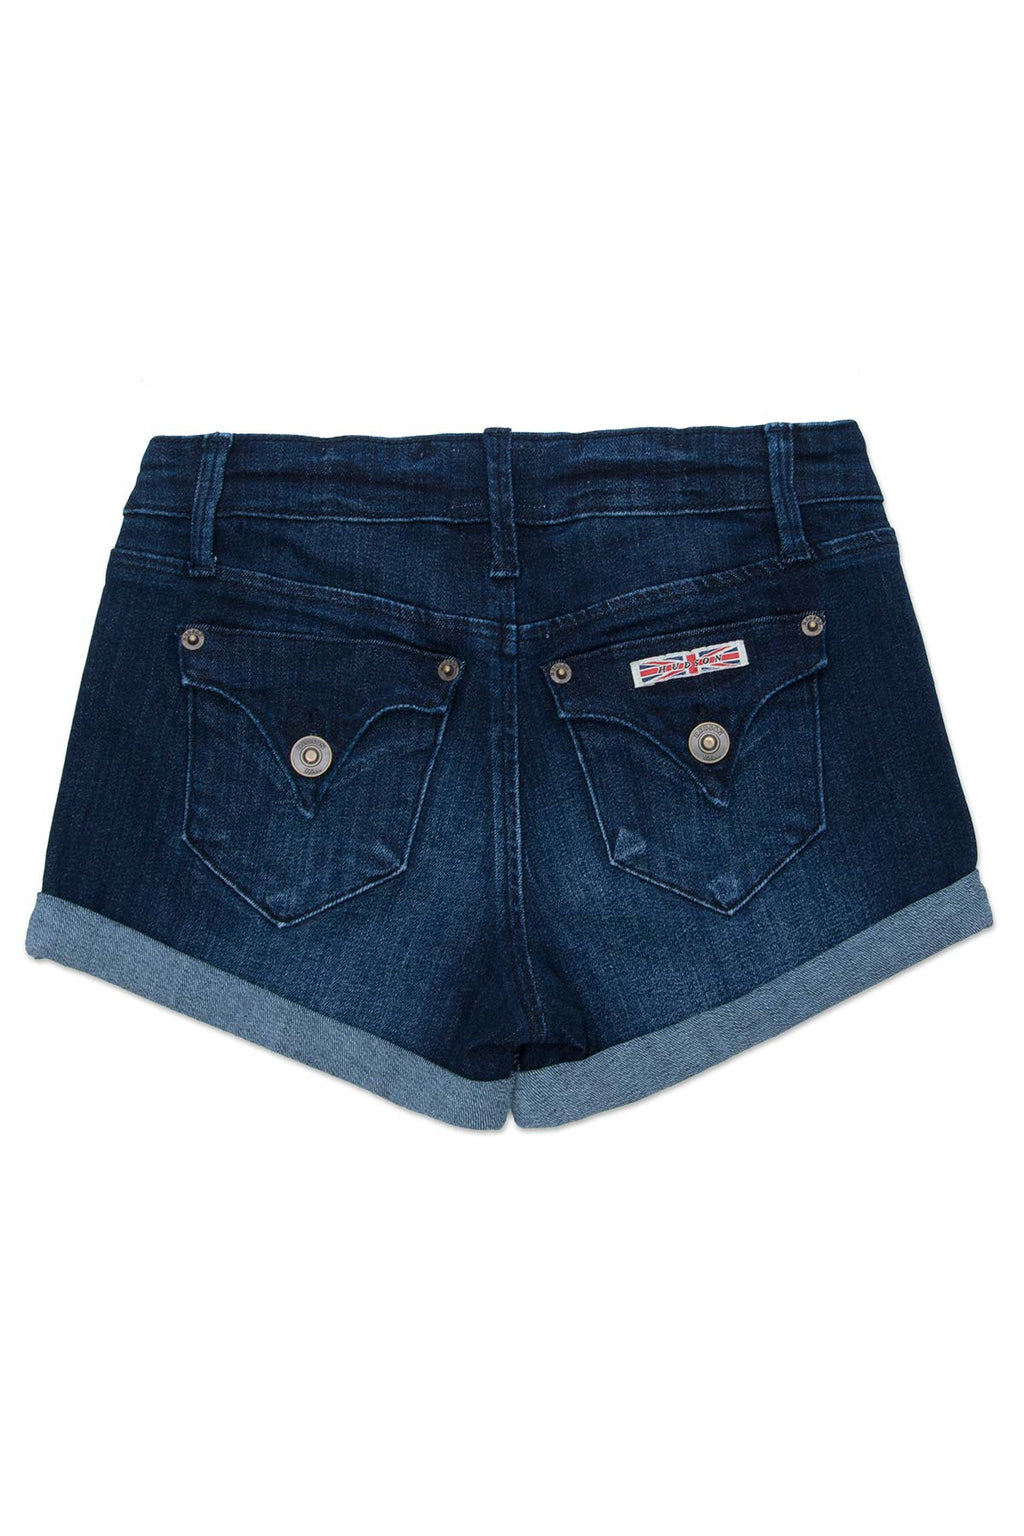 BIG GIRLS GIRLS COLLIN SHORT, SIZES 7-16 - LOW OCTANE - Image 2